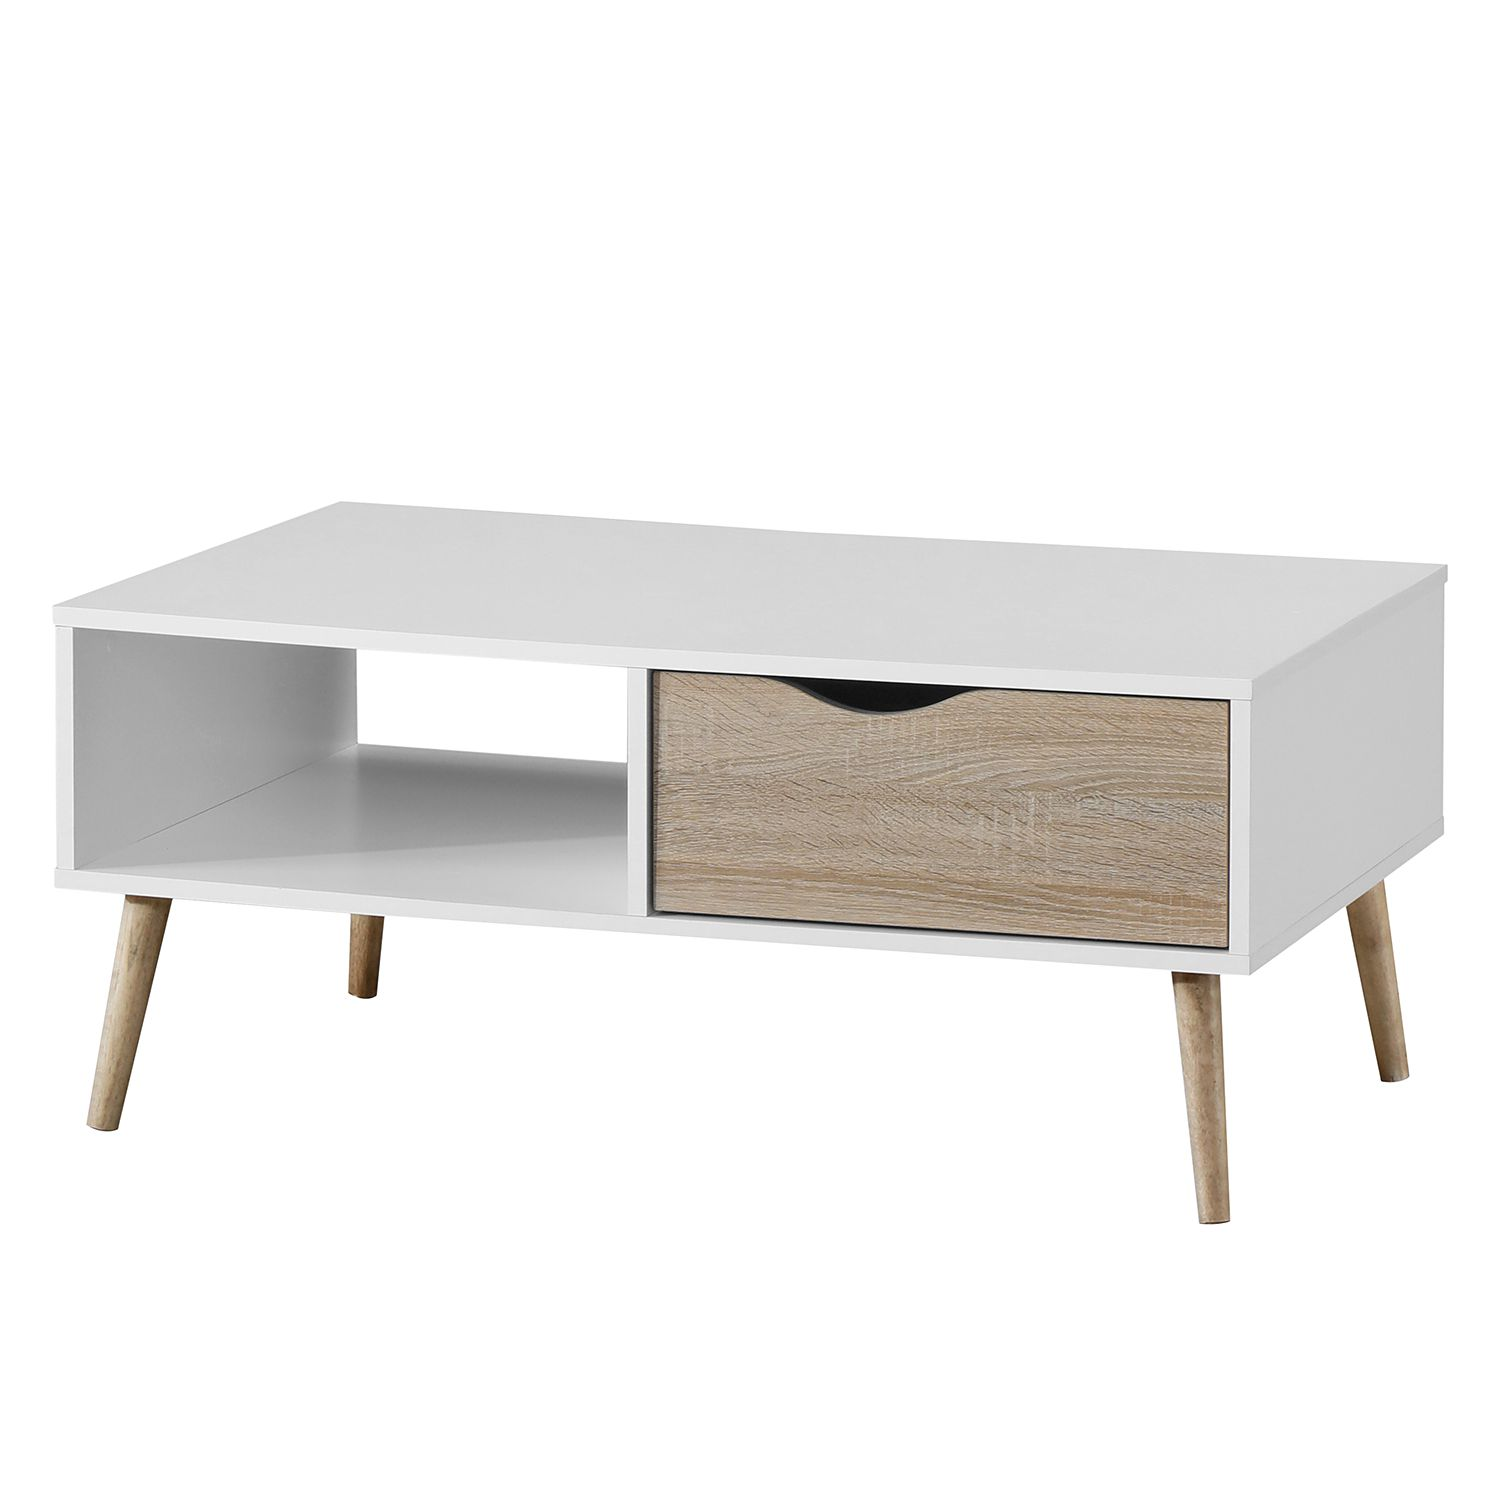 Table basse Sunndal